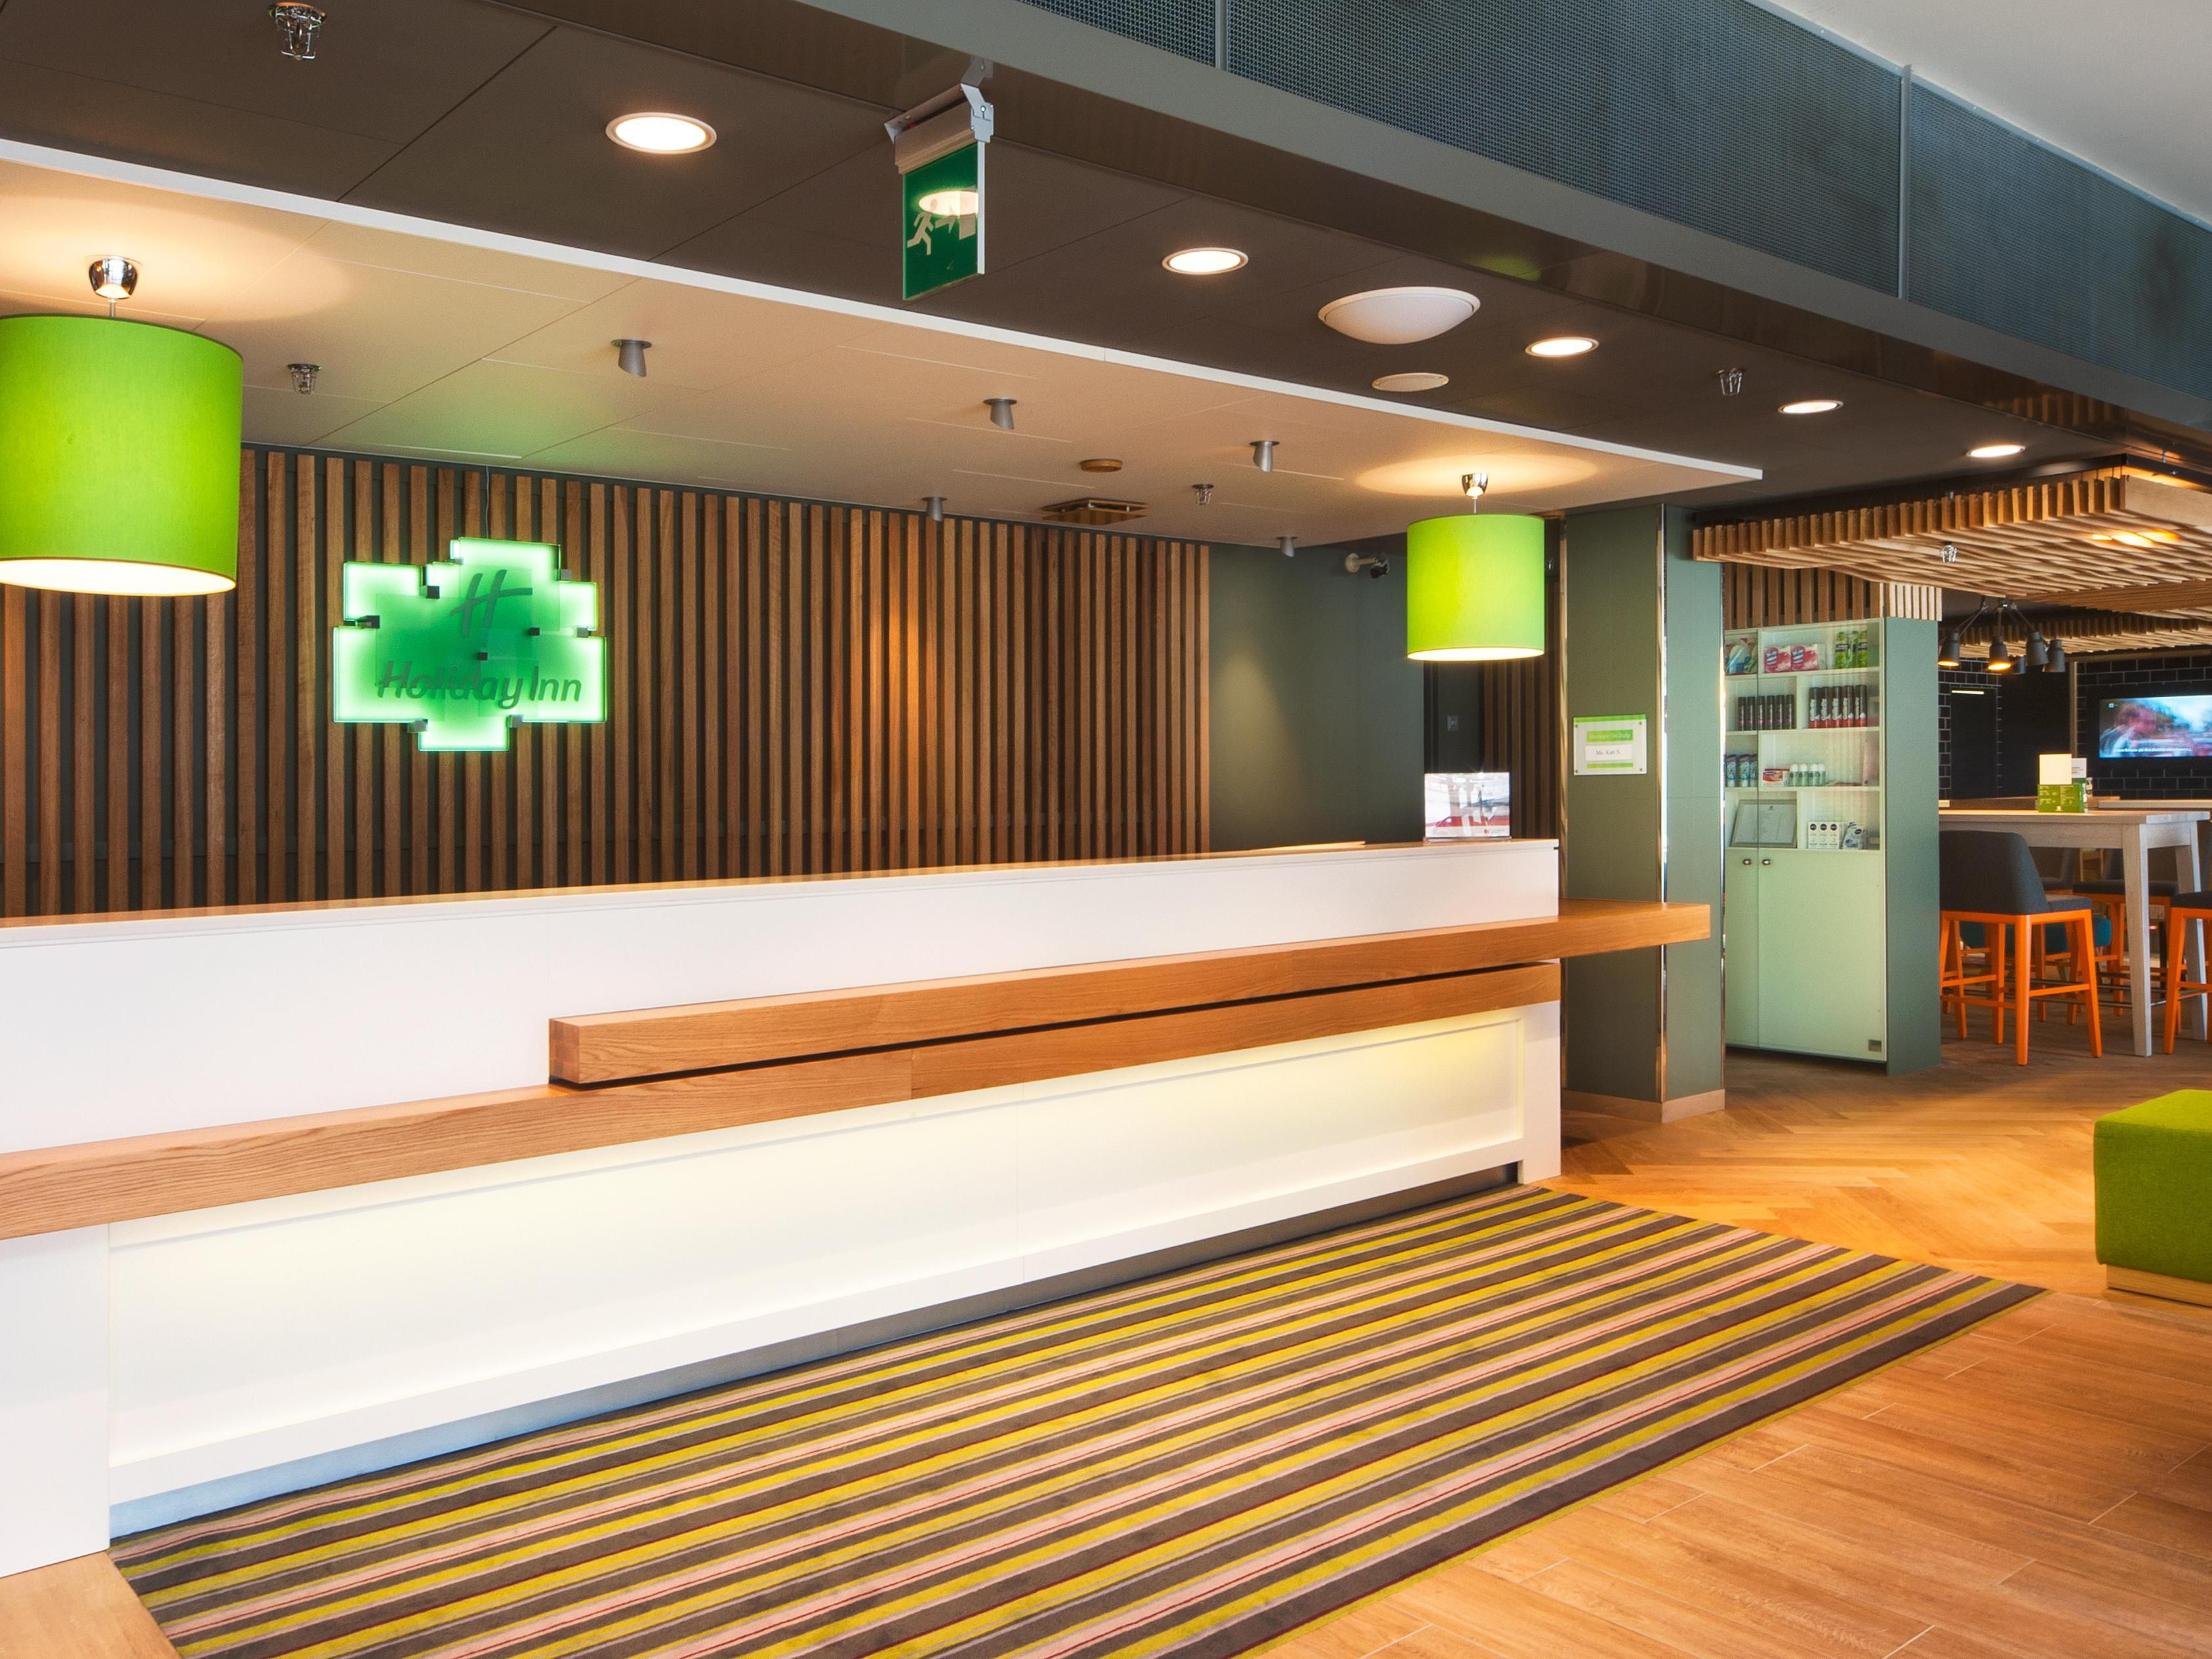 Welcome to Holiday Inn Helsinki City Centre with new Open Lobby